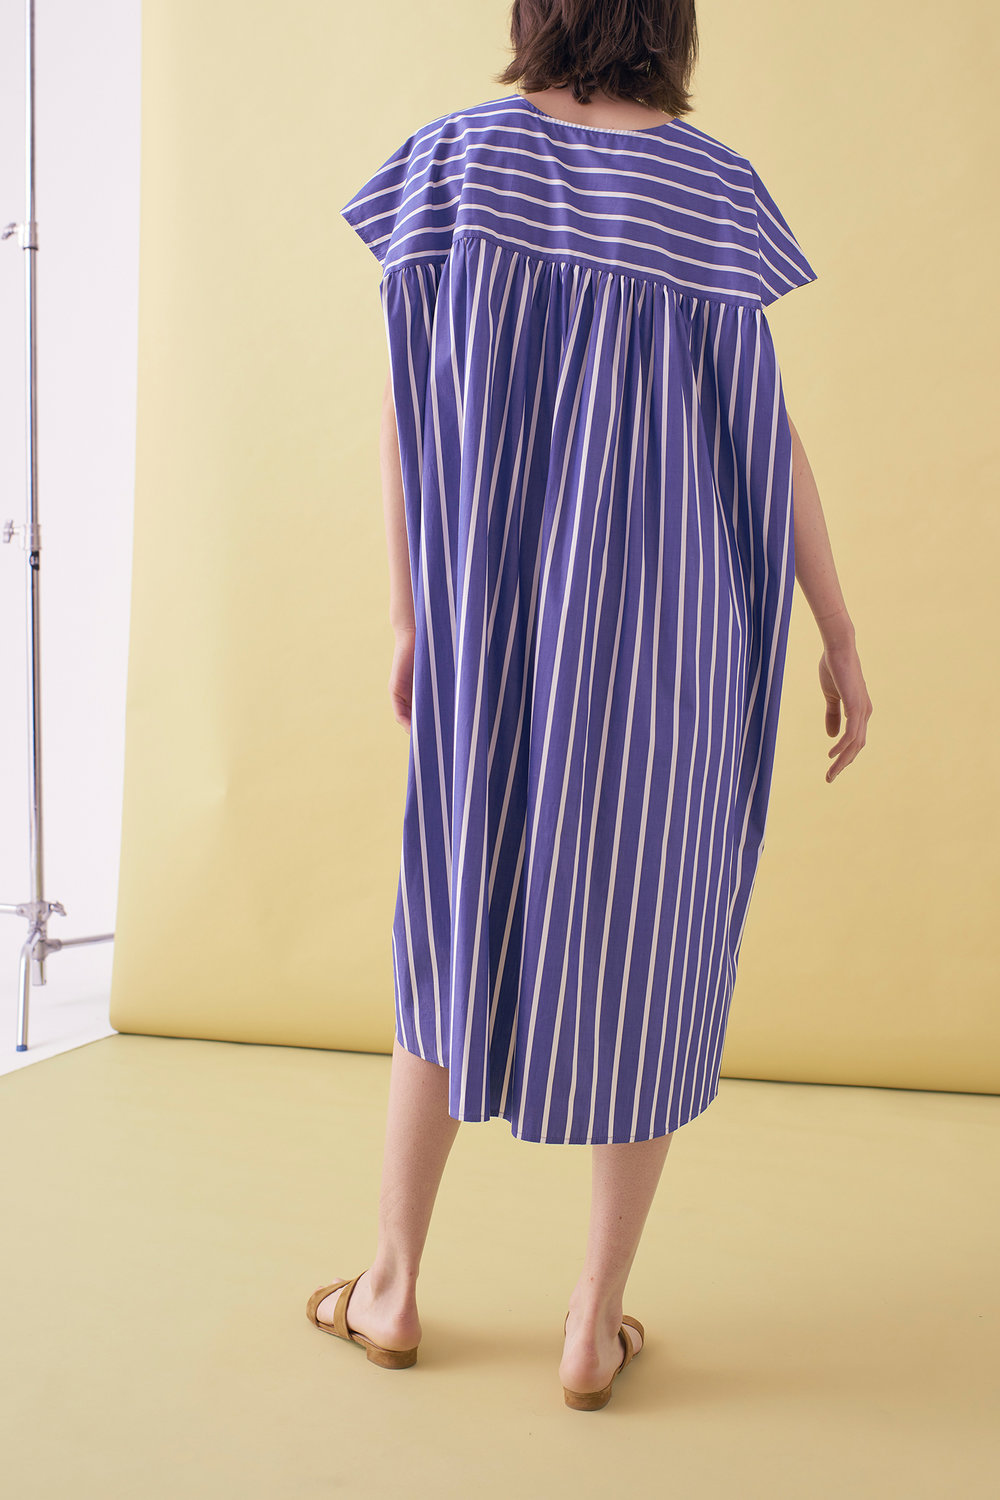 Sarah_Swann_SS17_01_Striped_Shirring_Dress_CeruleanBlue_B.jpg